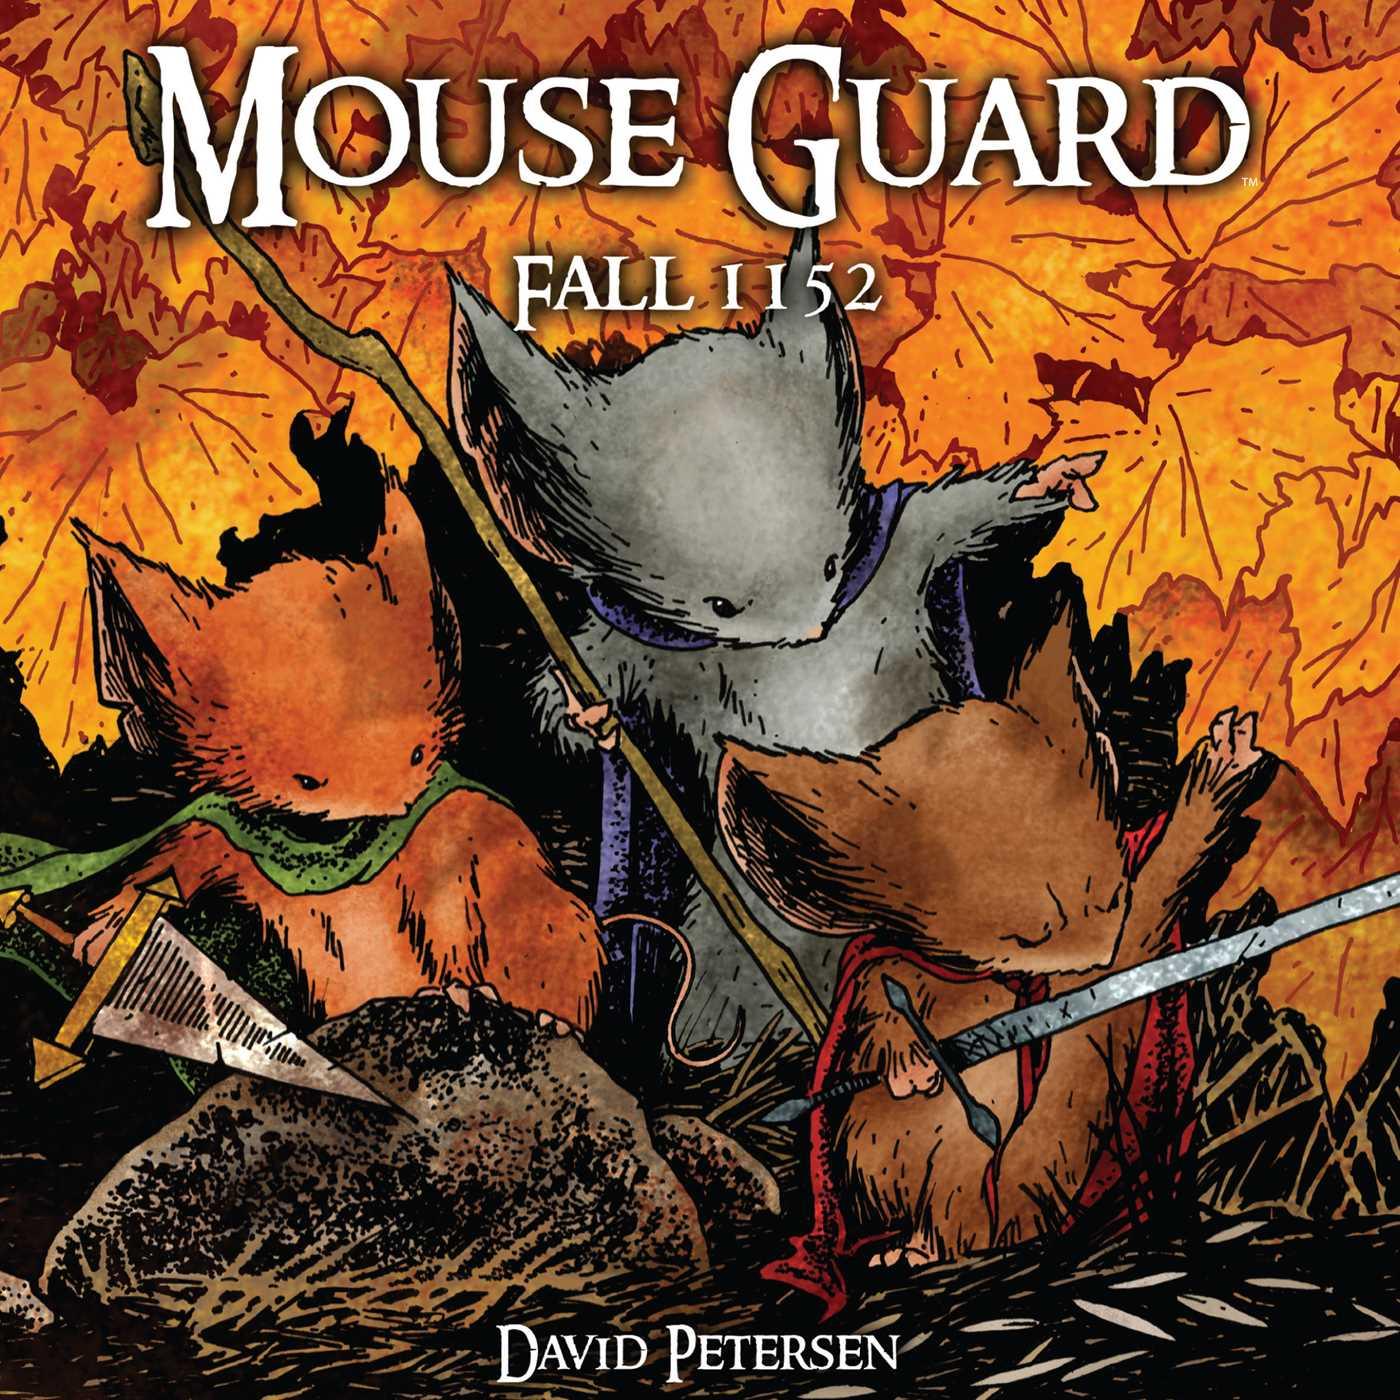 Book Cover Image (jpg): Mouse Guard Volume 1: Fall 1152